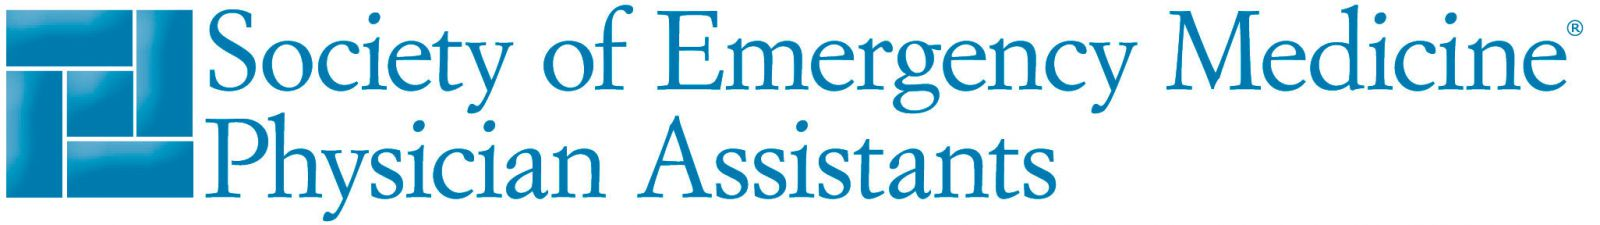 Society of Emergency Medicine Physician Assistants (SEMPA)